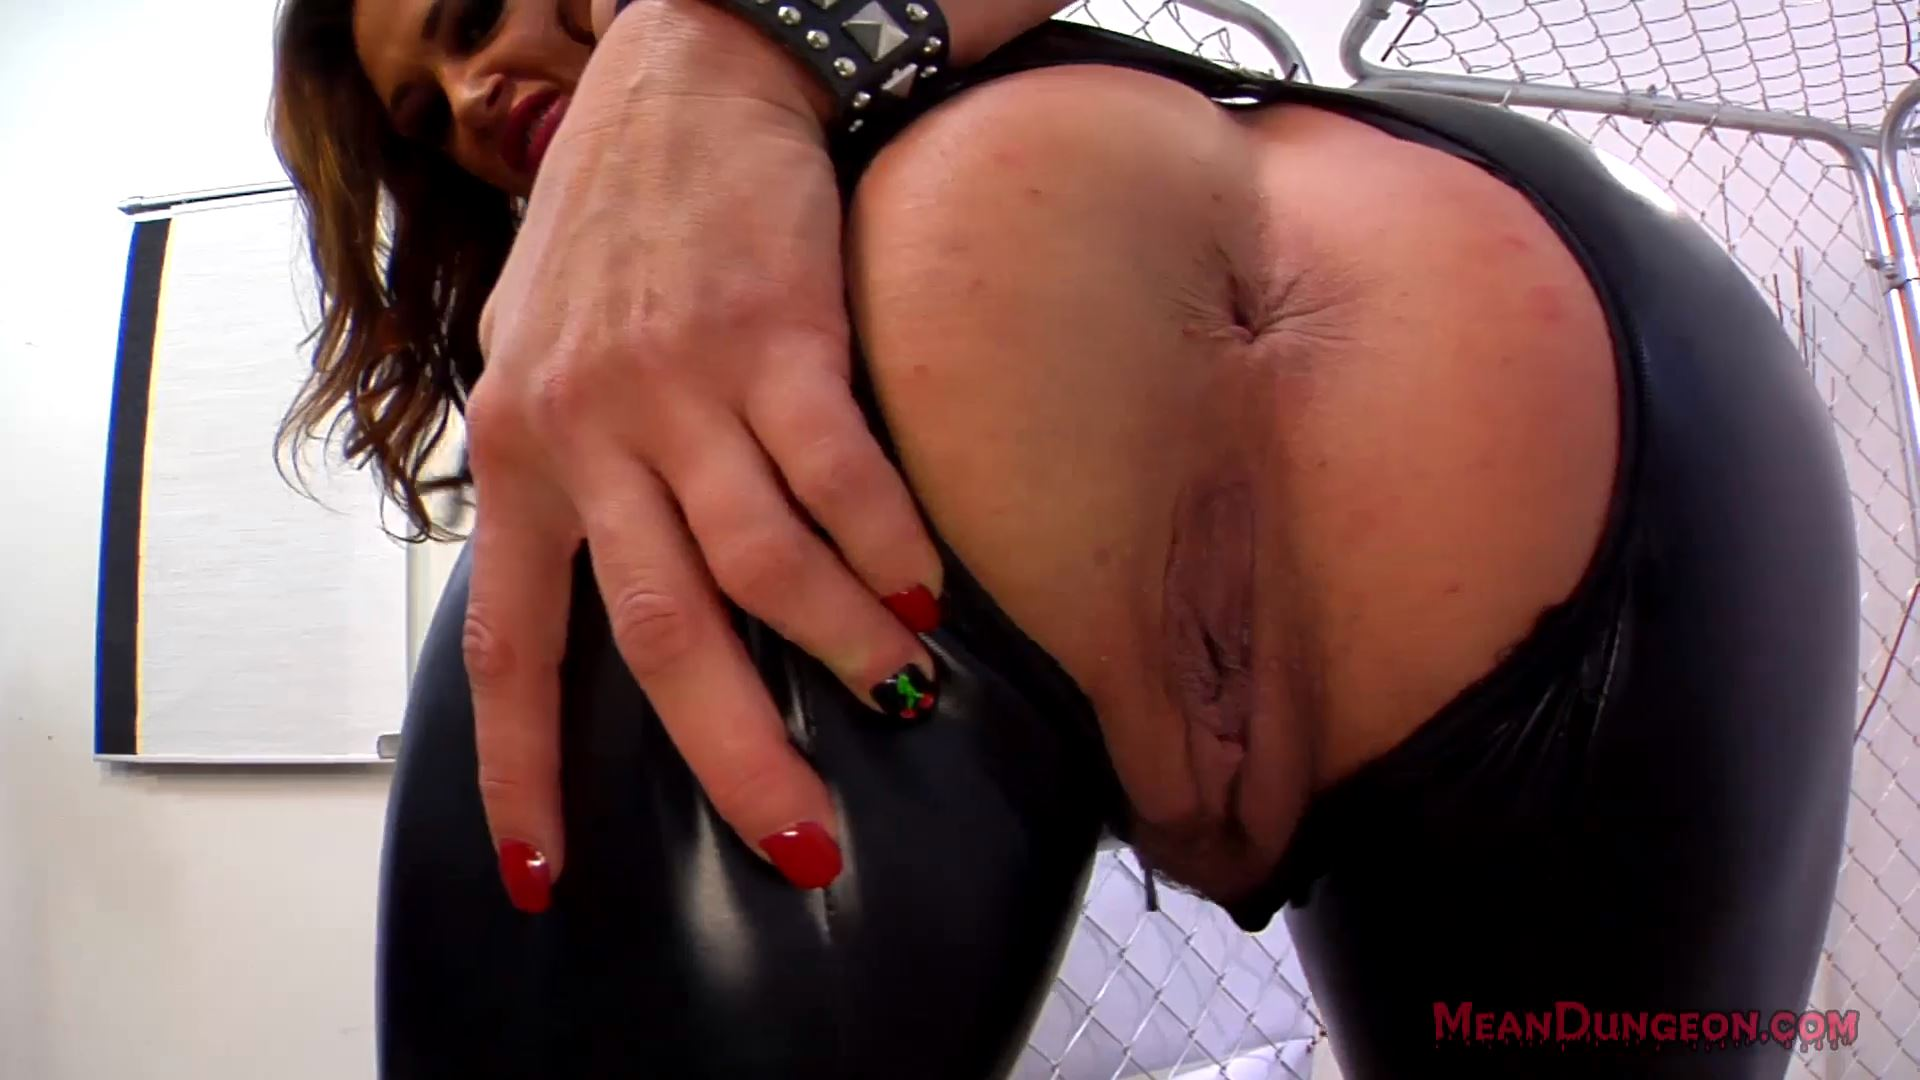 Tory Lane In Scene: SLAVEORDERS - Tory Lane POV - MEANWORLD - FULL HD/1080p/MP4